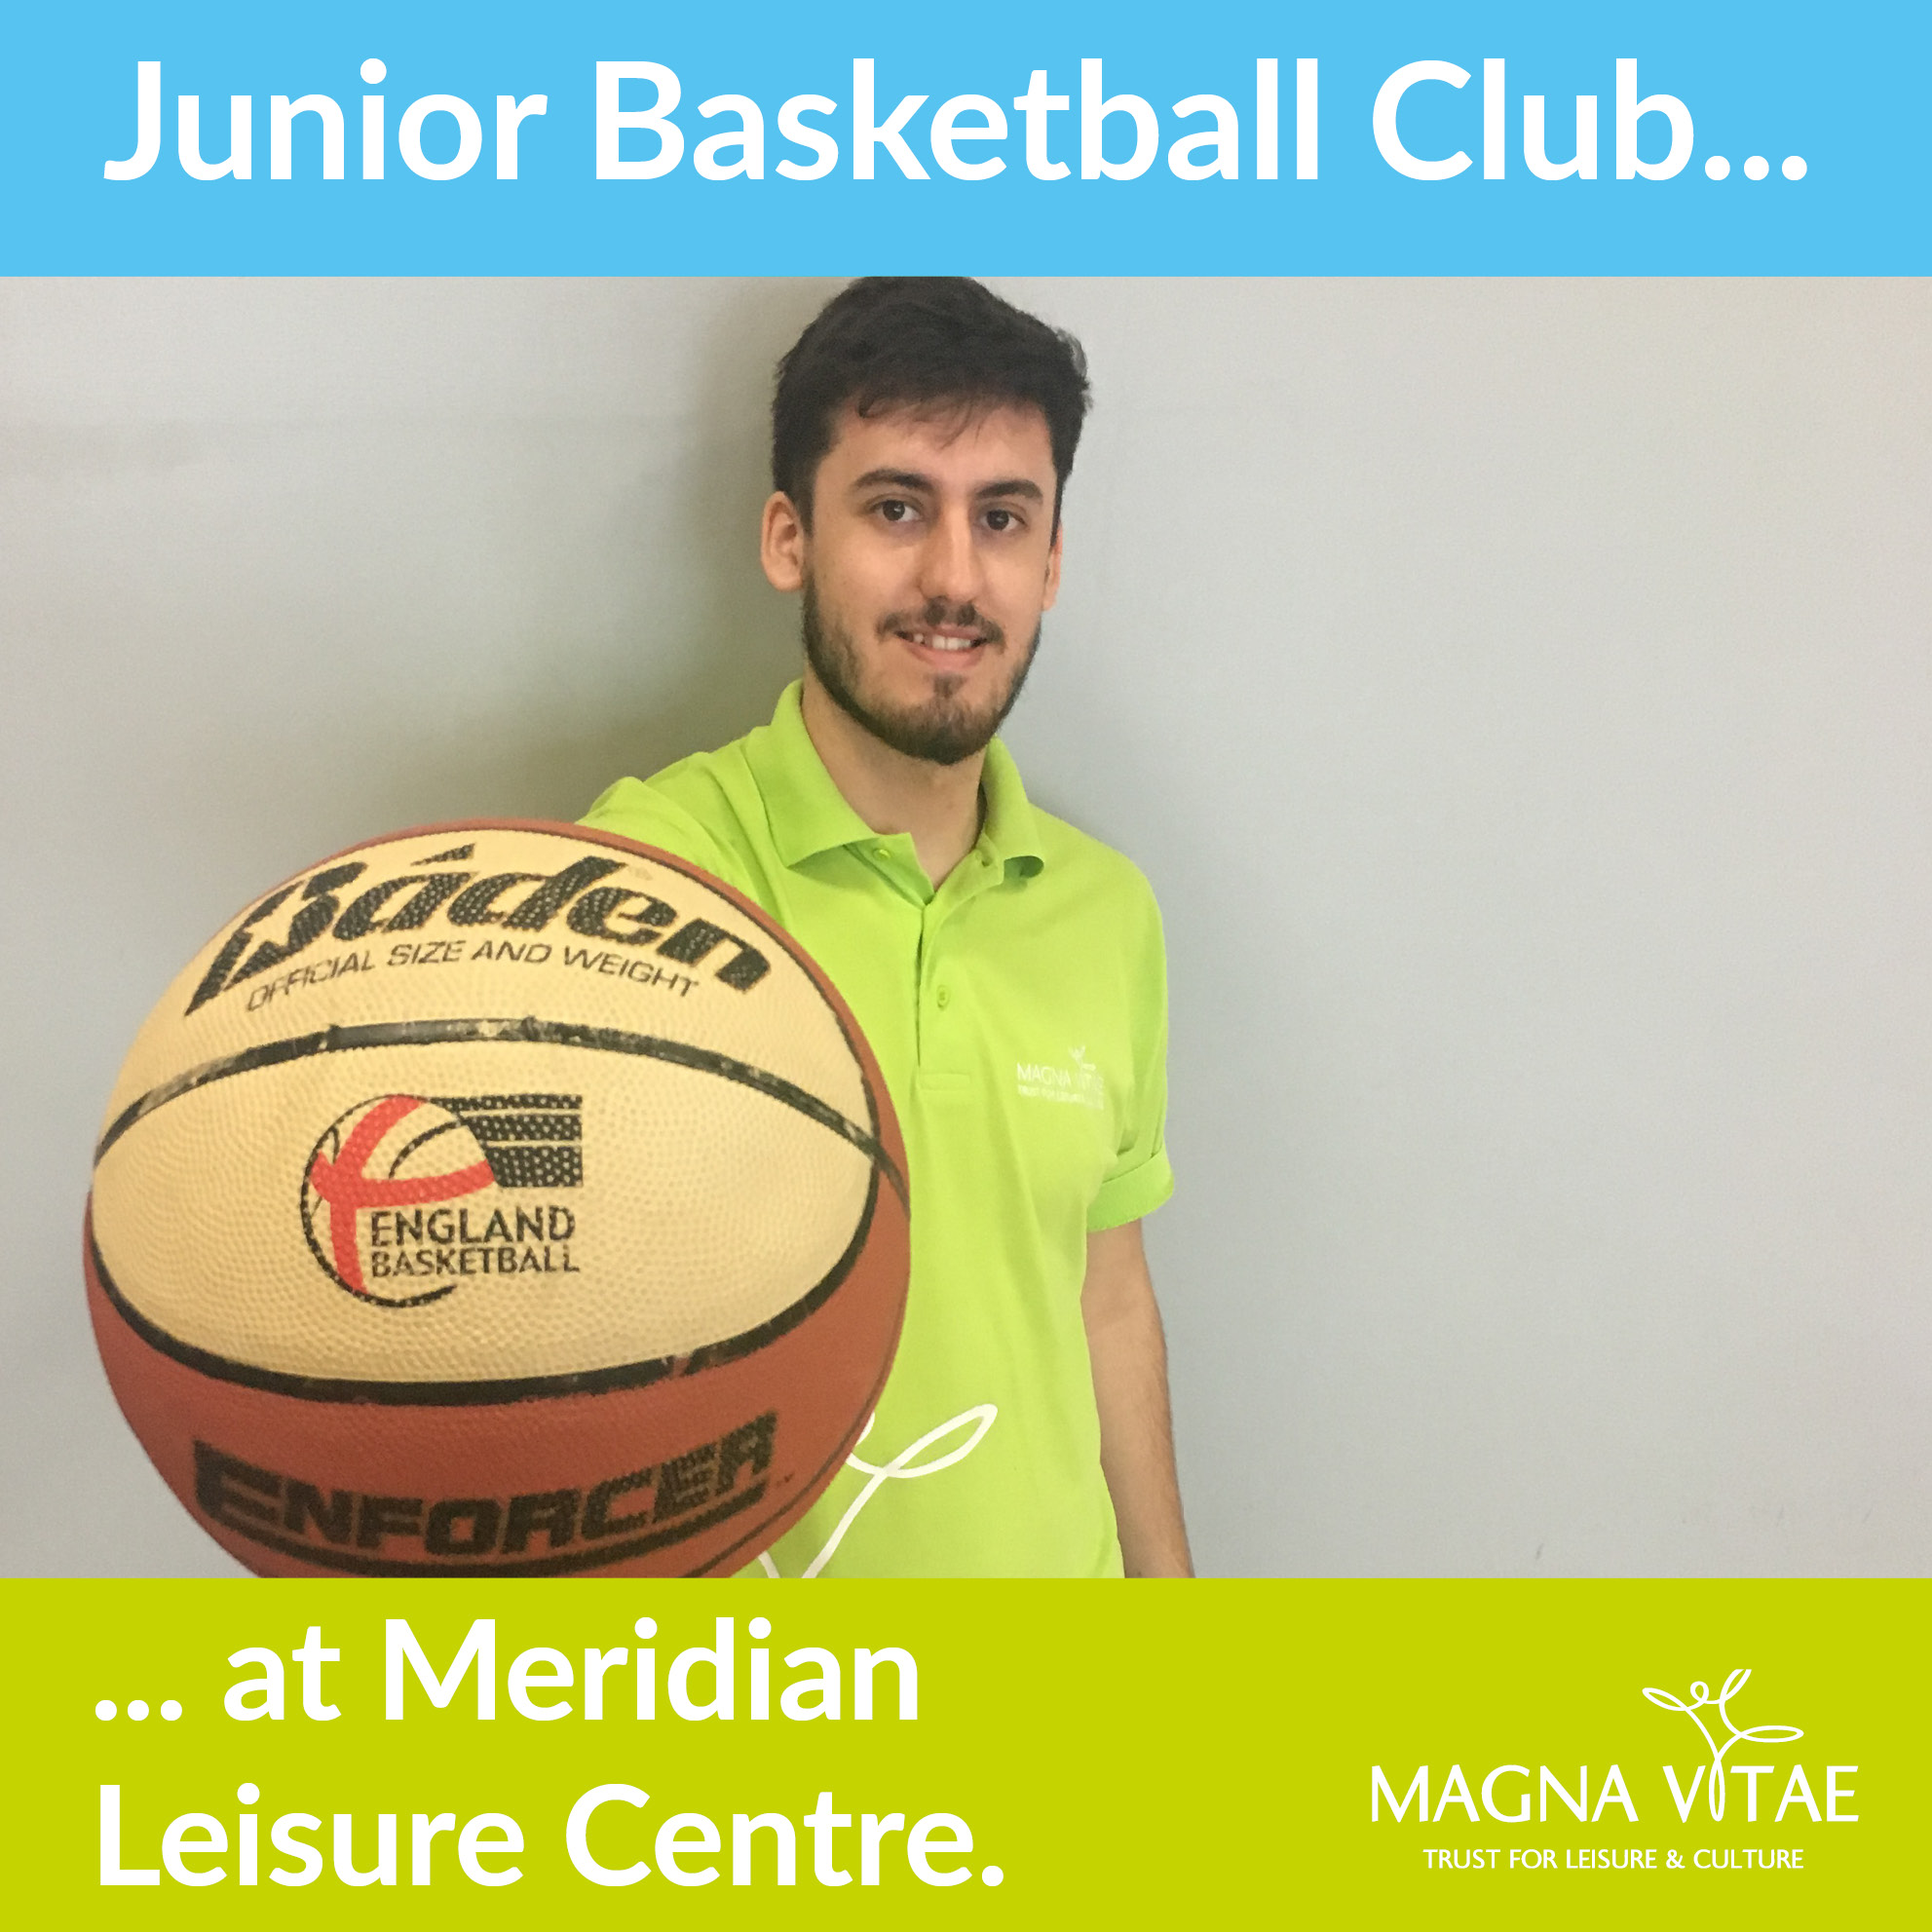 Basketball, Junior Basketball Club, Meridian Leisure Centre, Louth